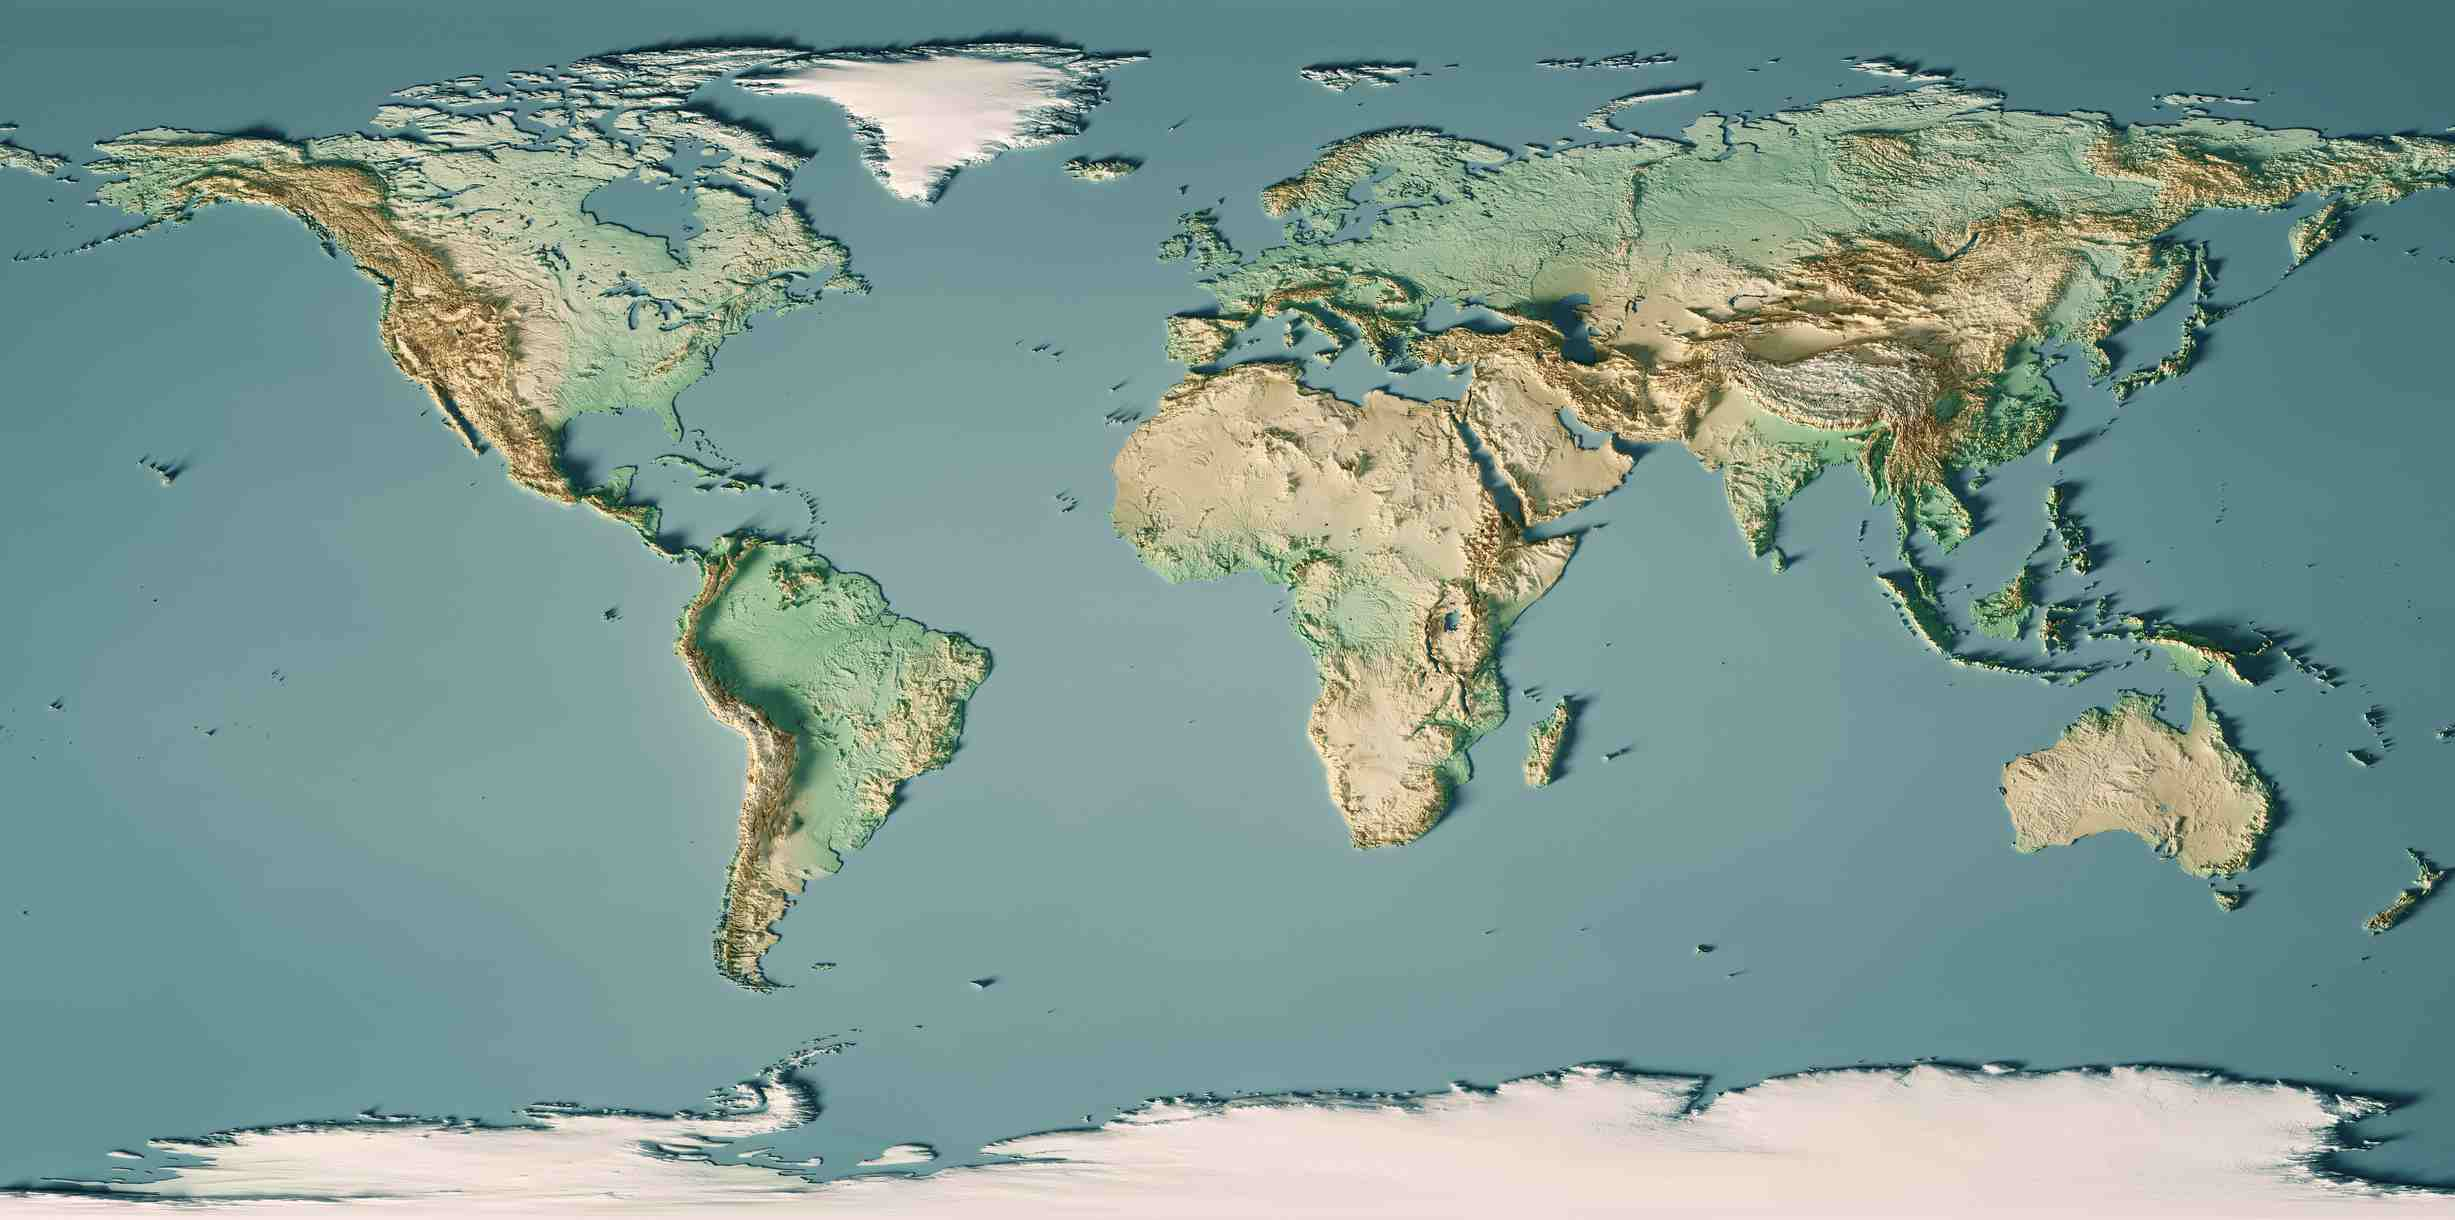 World Map Water.Types Of Maps Topographic Political Climate And More